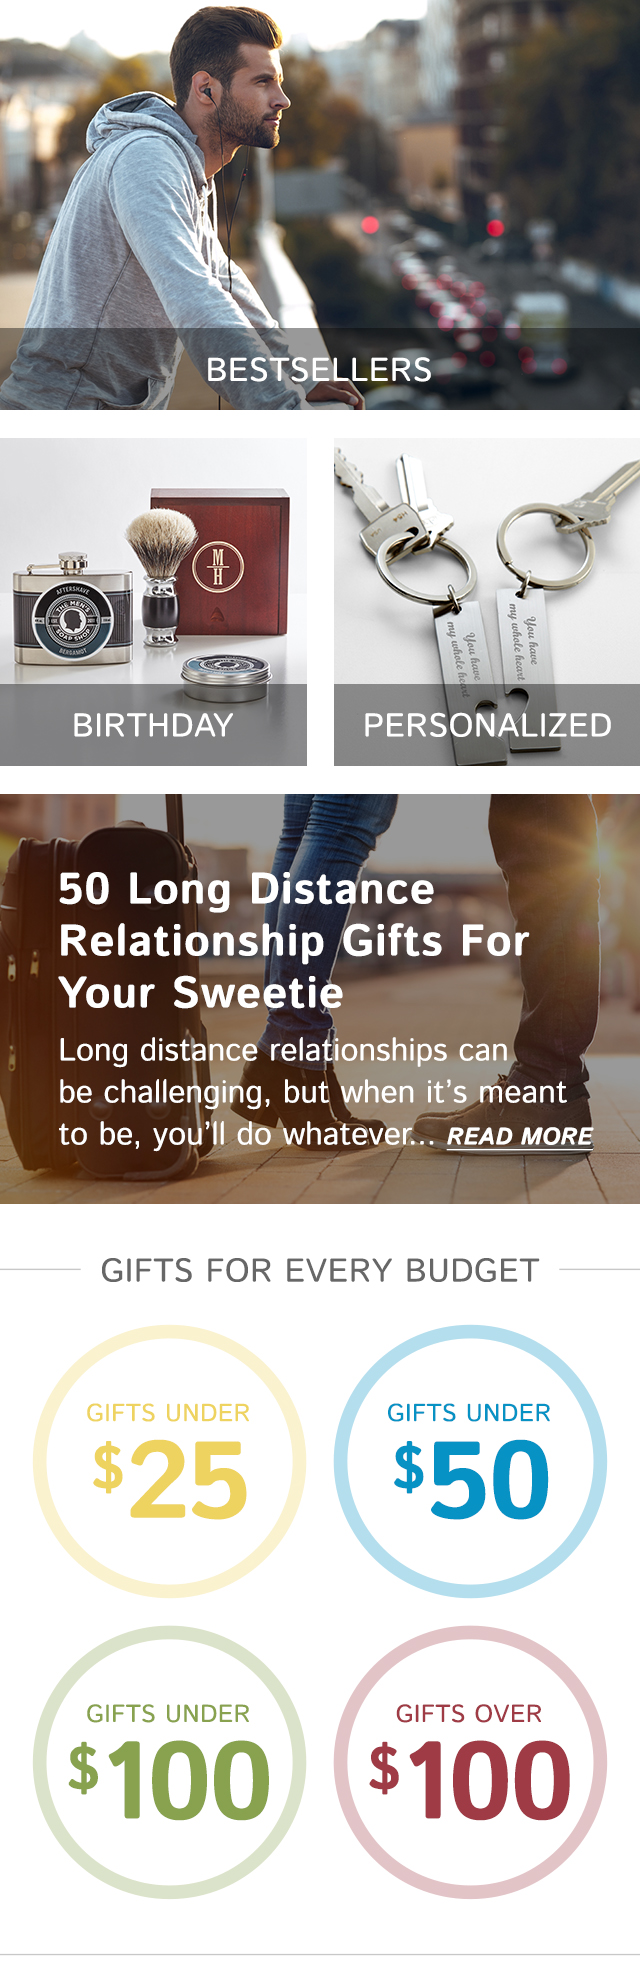 Gifts for Boyfriend | Gifts.com